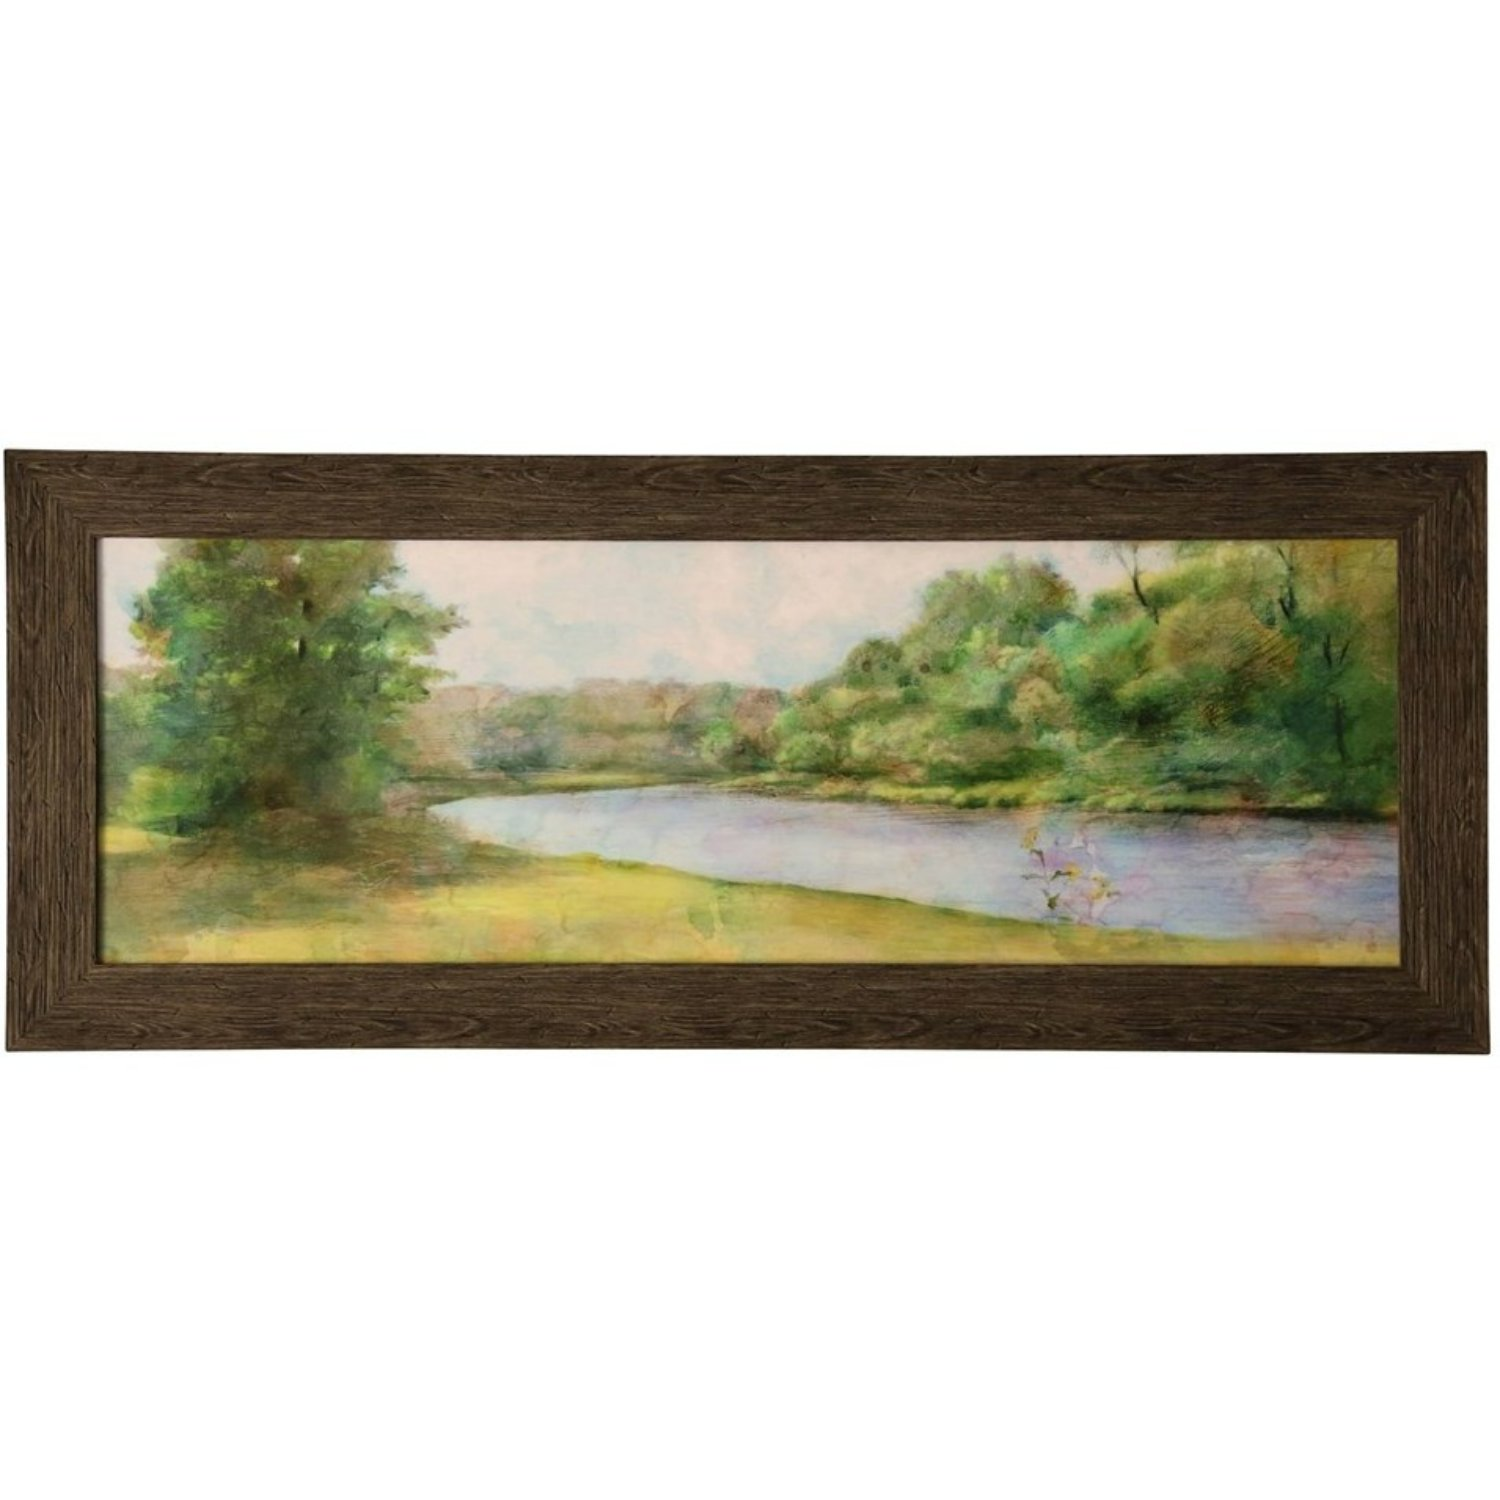 Creekside-Framed-Print_74073A.jpg